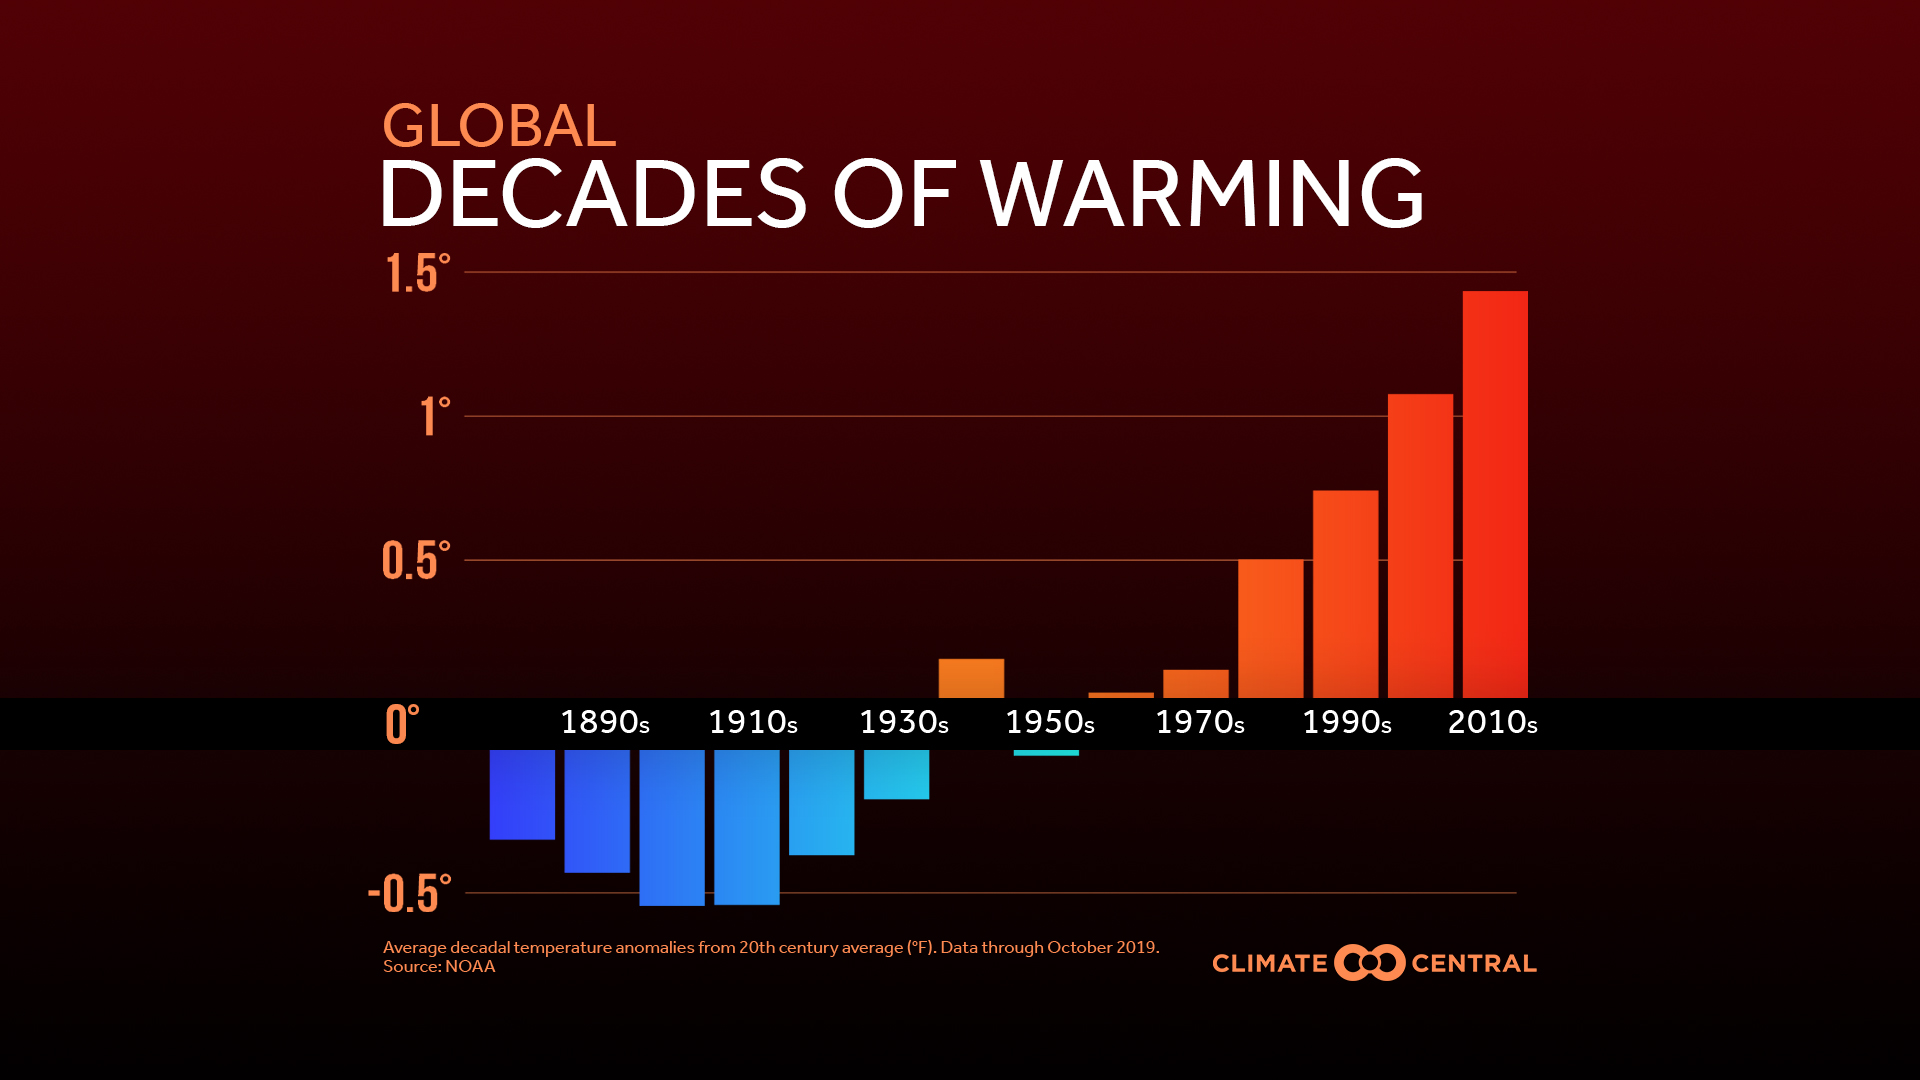 Global Decades of Warming